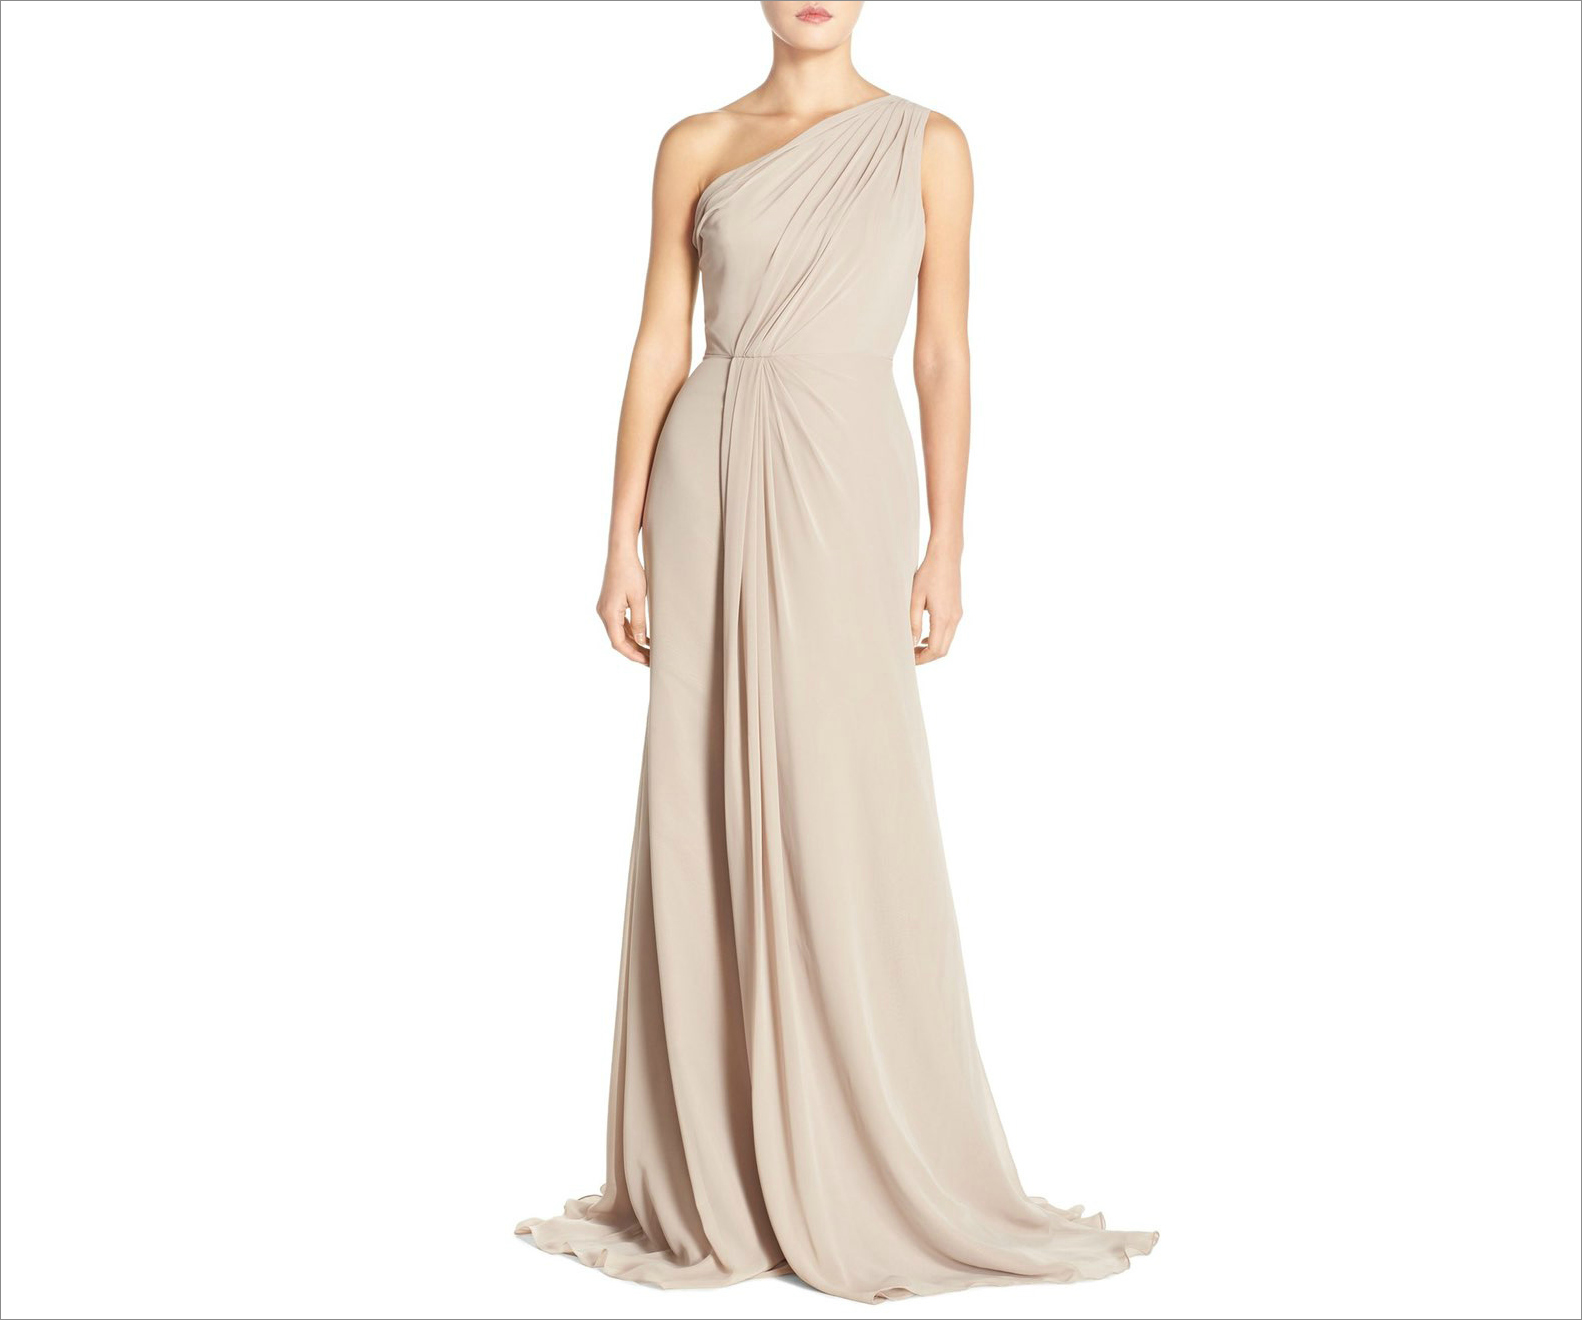 One shoulder chiffon bridesmaid dress by Monique Lhuillier bridesmaids